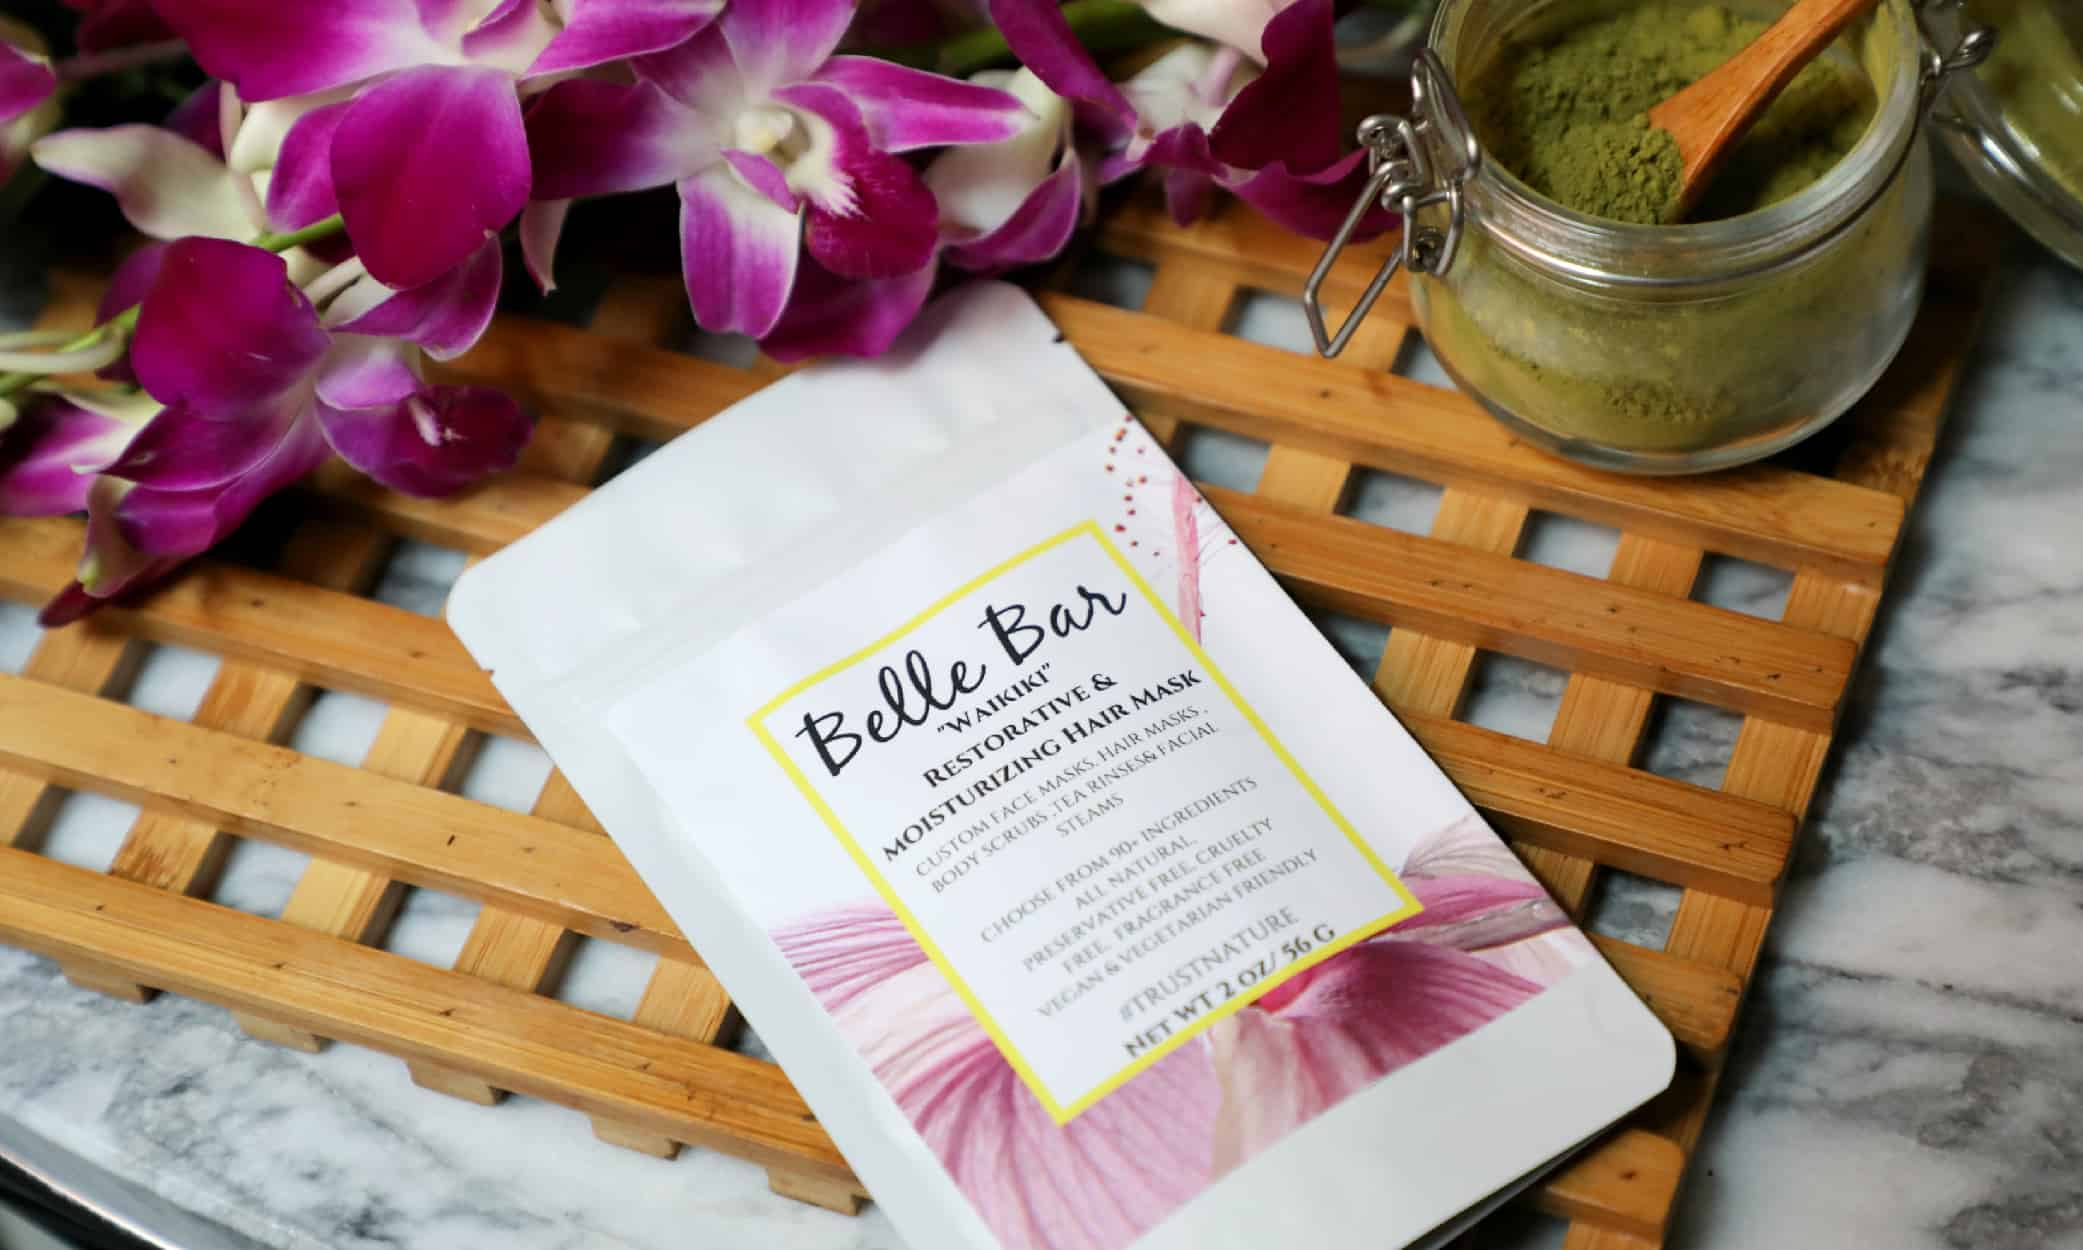 Belle Bar Waikiki Restorative & Moisturizing Hair Mask